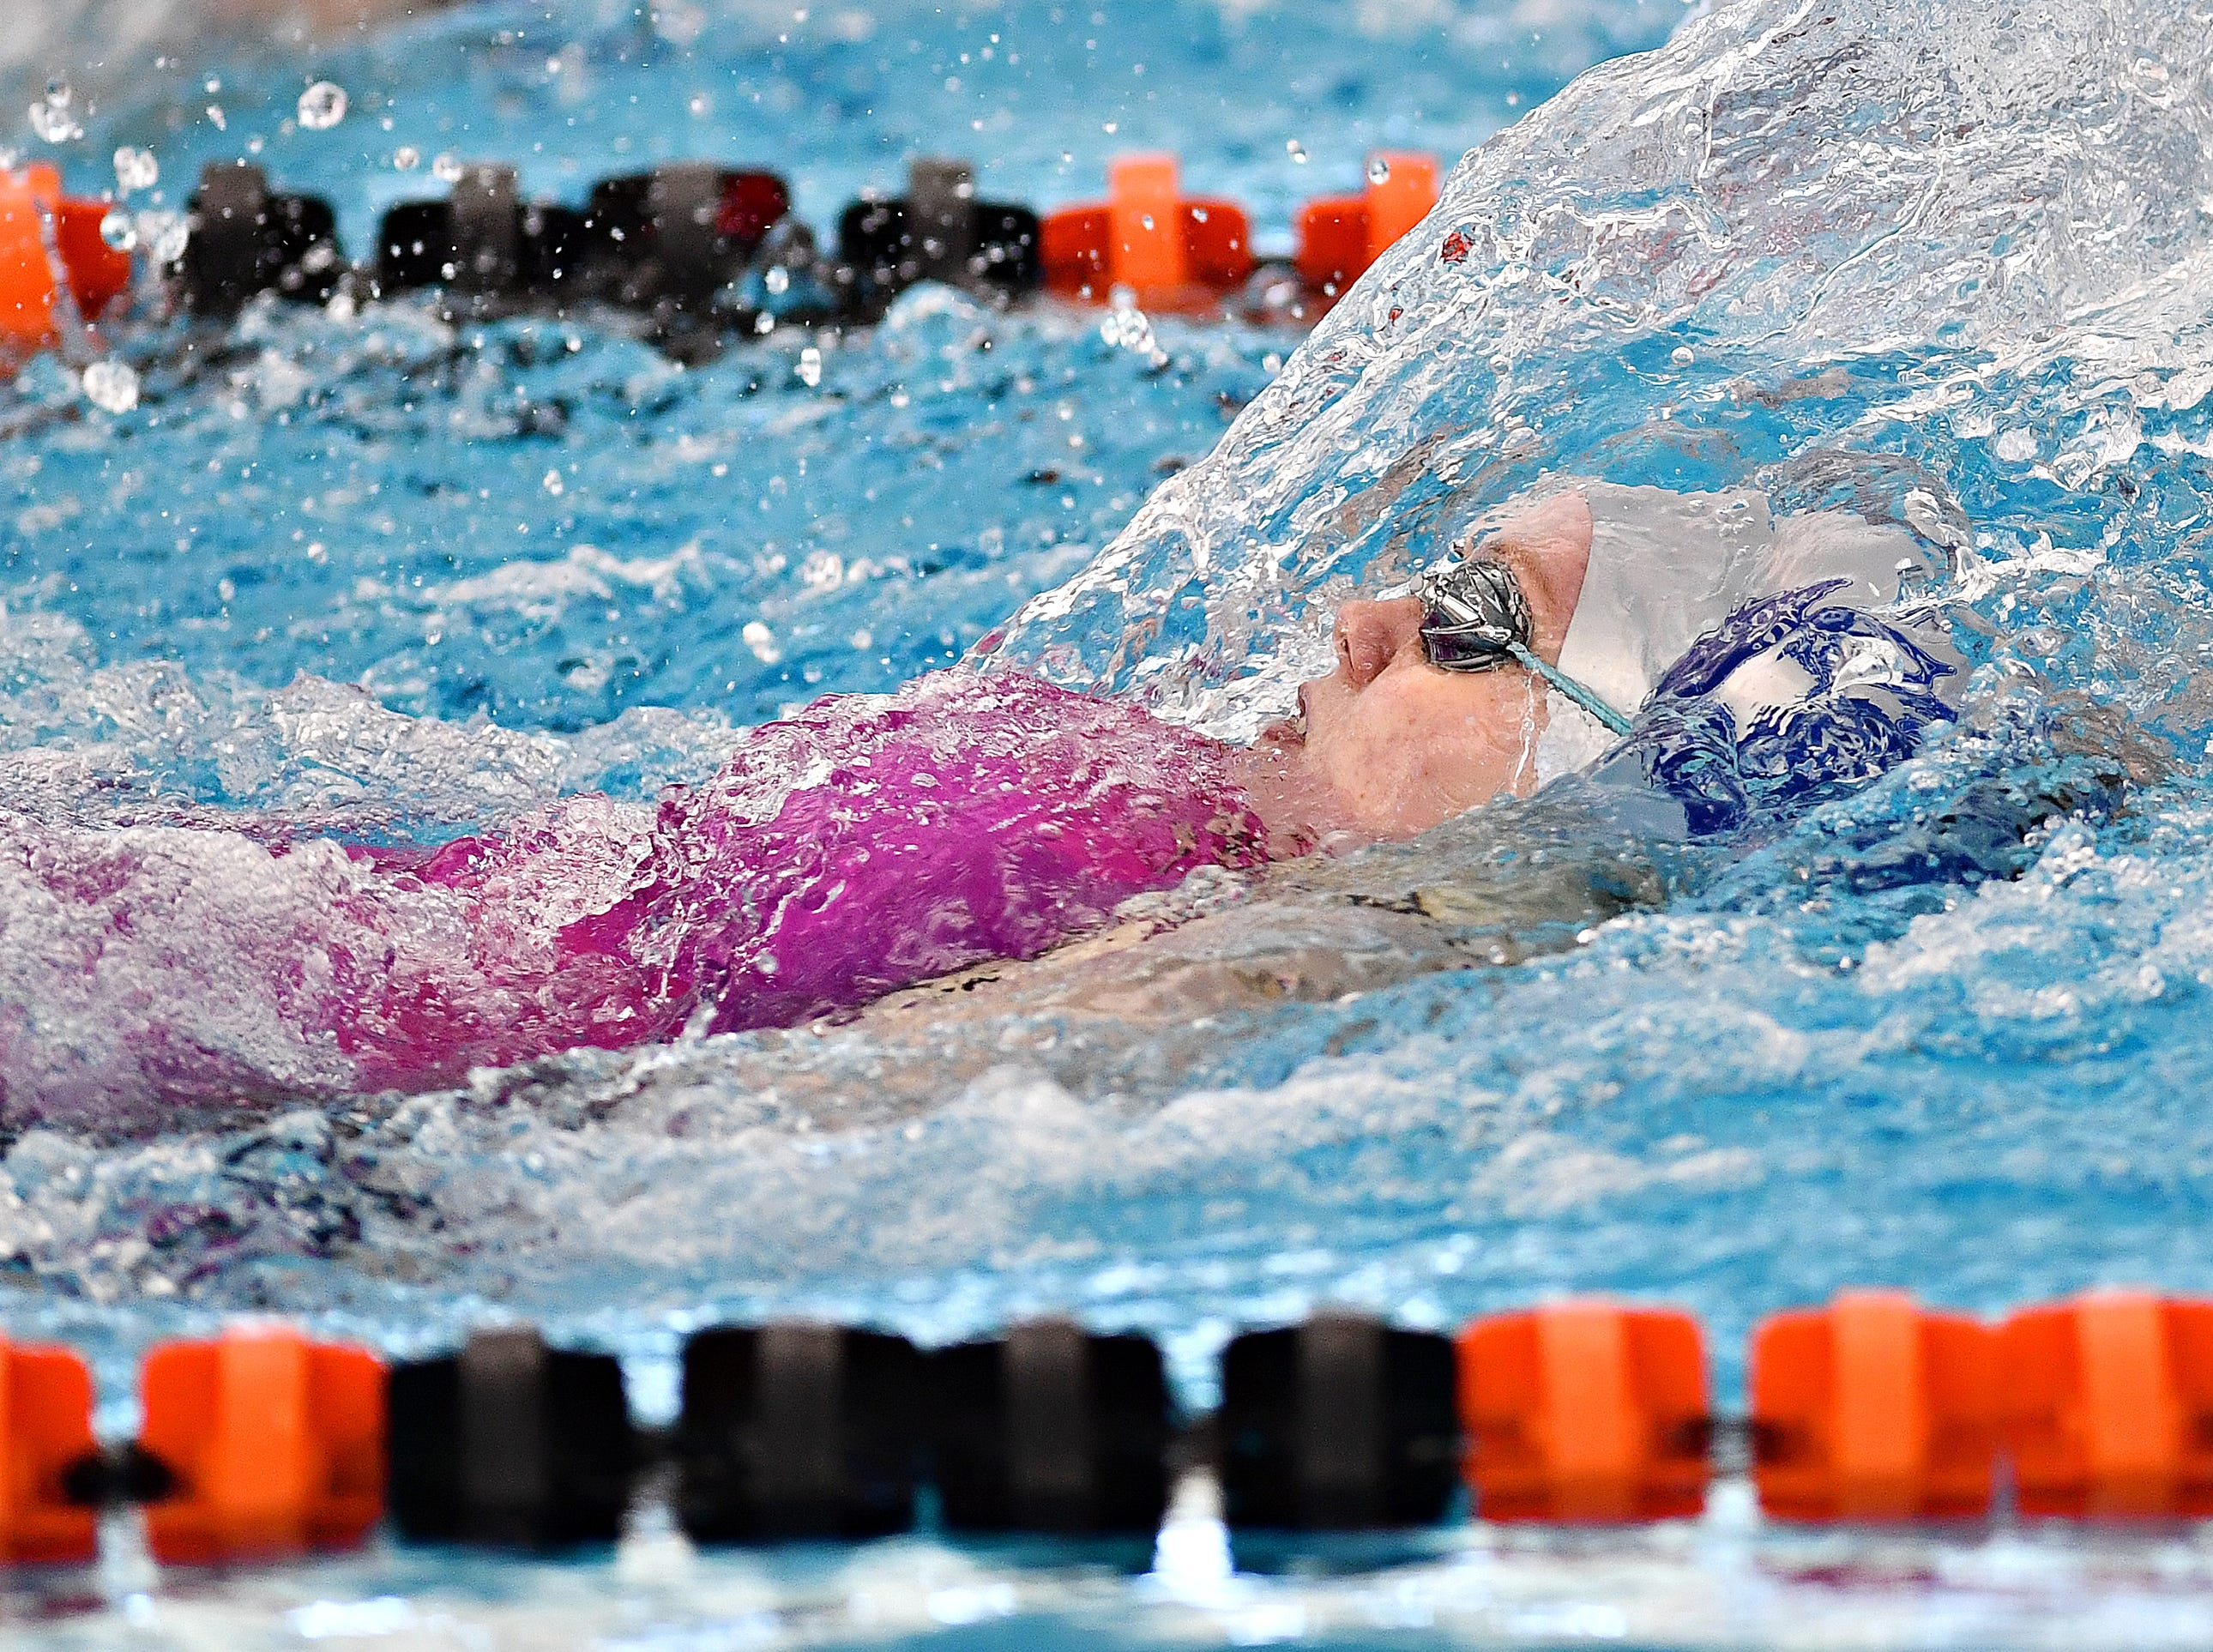 New Oxford's Ashley Myers competes in the 100 Yard Backstroke event during York-Adams League Swimming Championship at Central York High School in Springettsbury Township, Saturday, Feb. 9, 2019. Dawn J. Sagert photo